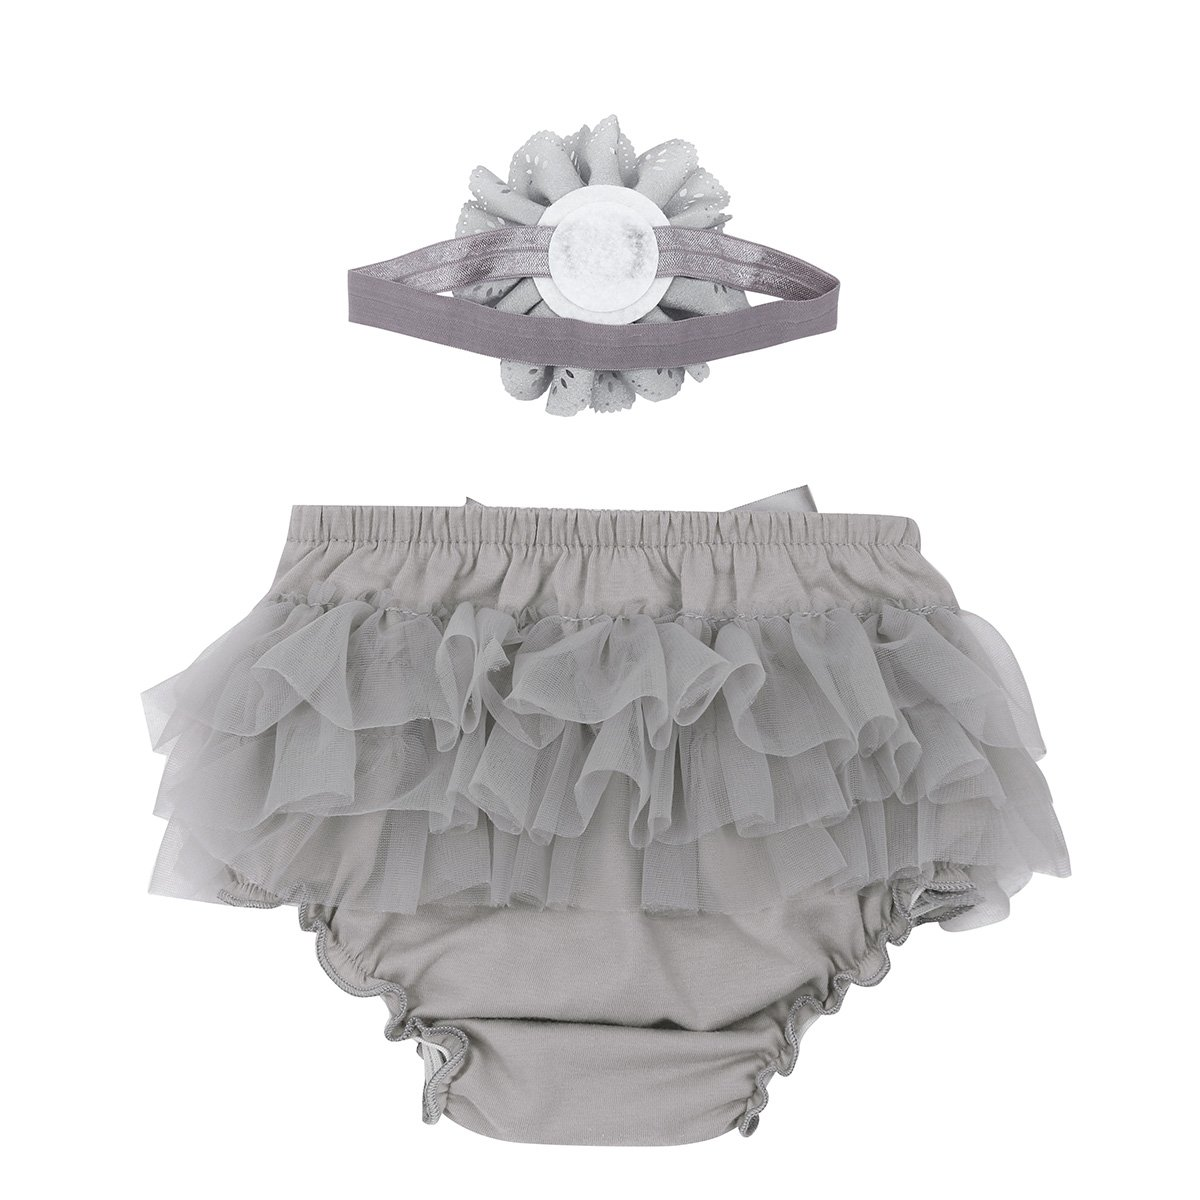 Agoky Baby Girls Ruffle Tutu Bloomers Diaper Cover Panties with Flower Headband Outfit Set Photo Shoot Prop